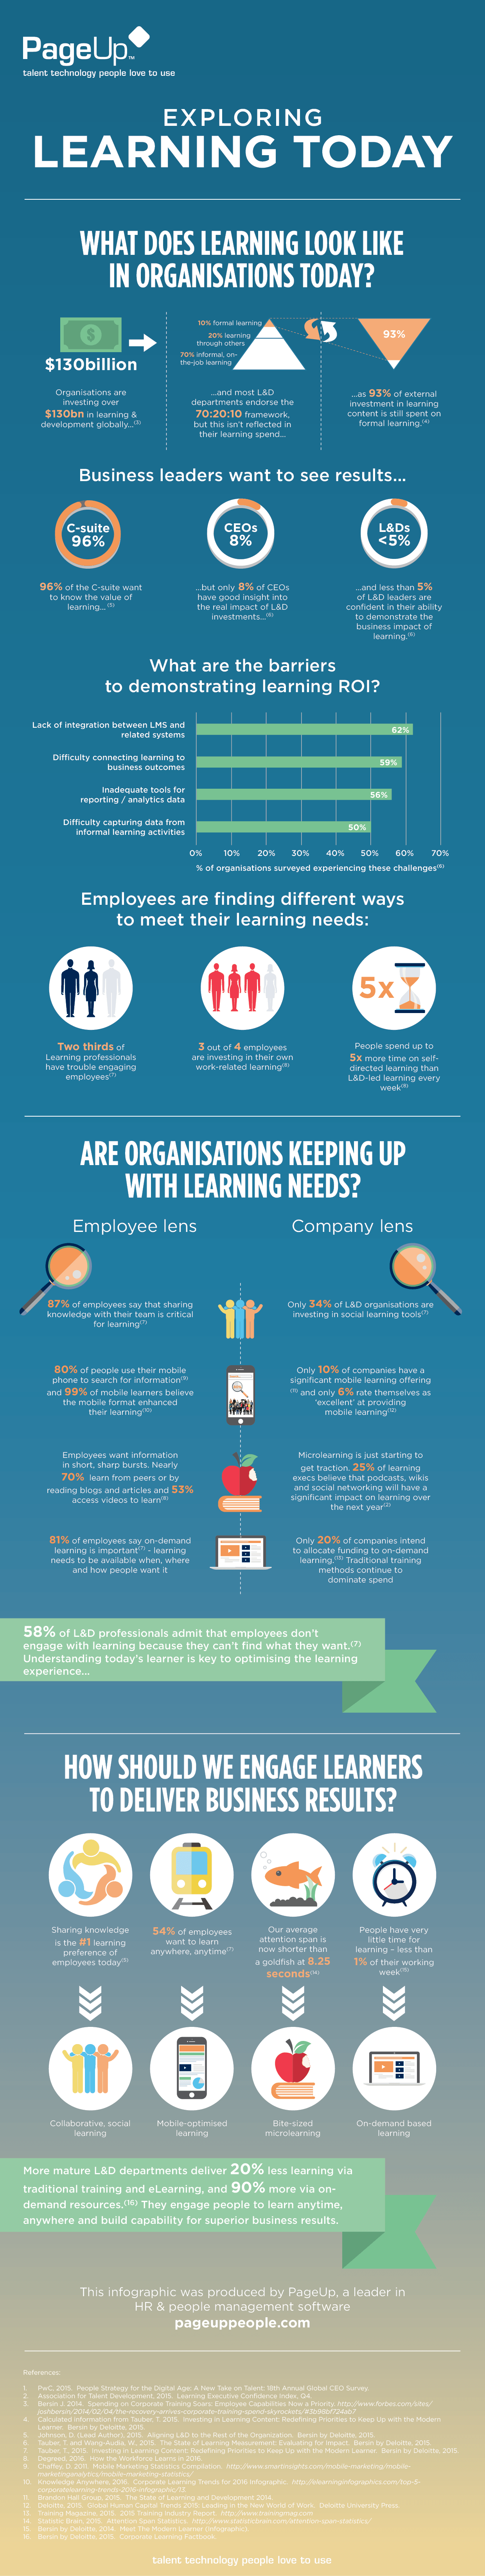 Exploring Corporate Learning Today Infographic